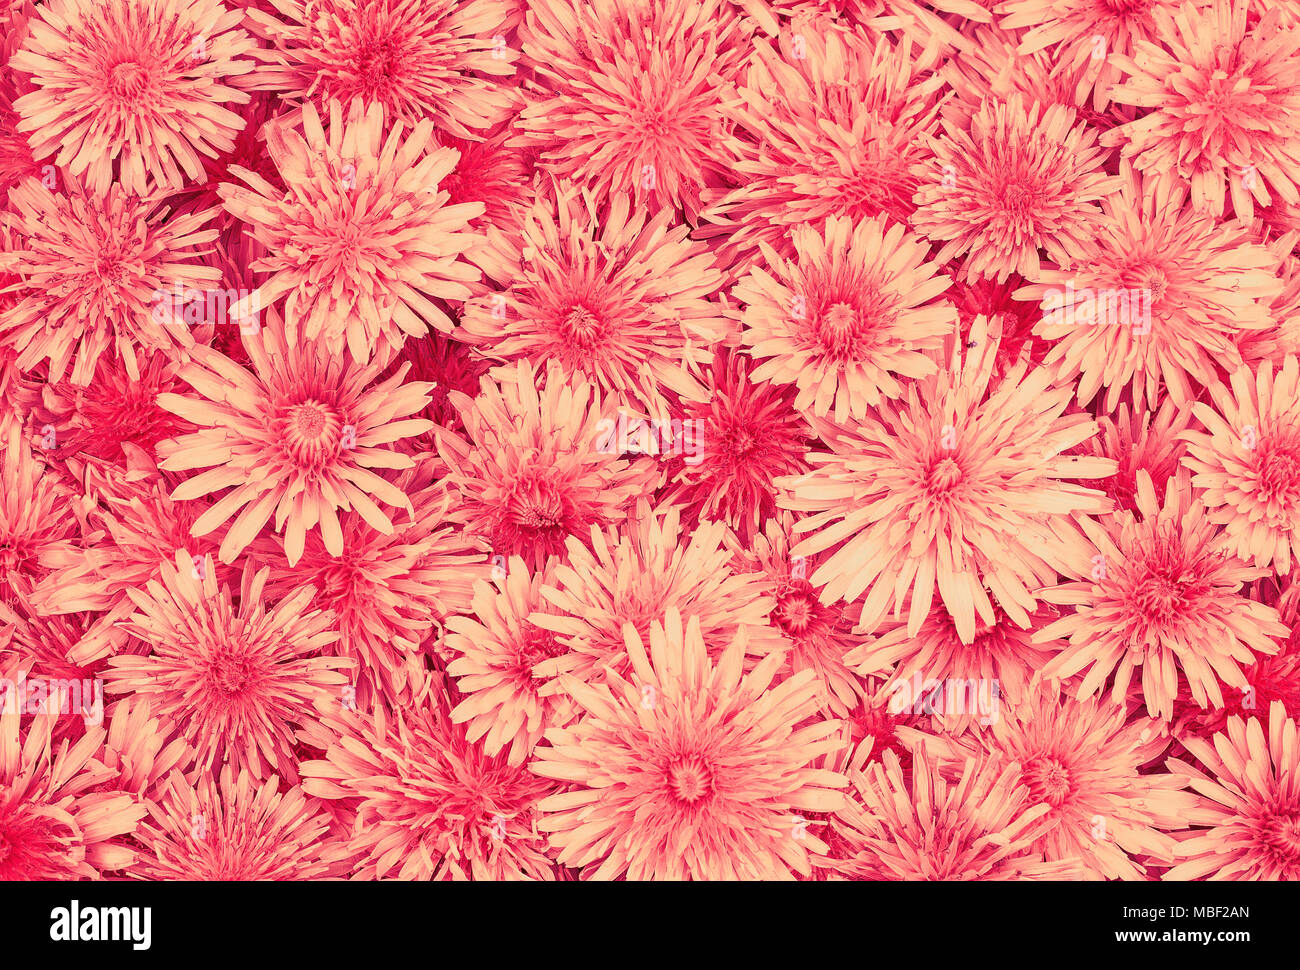 Delicate Beautiful Natural Background Of Many Fluffy Red Daisy